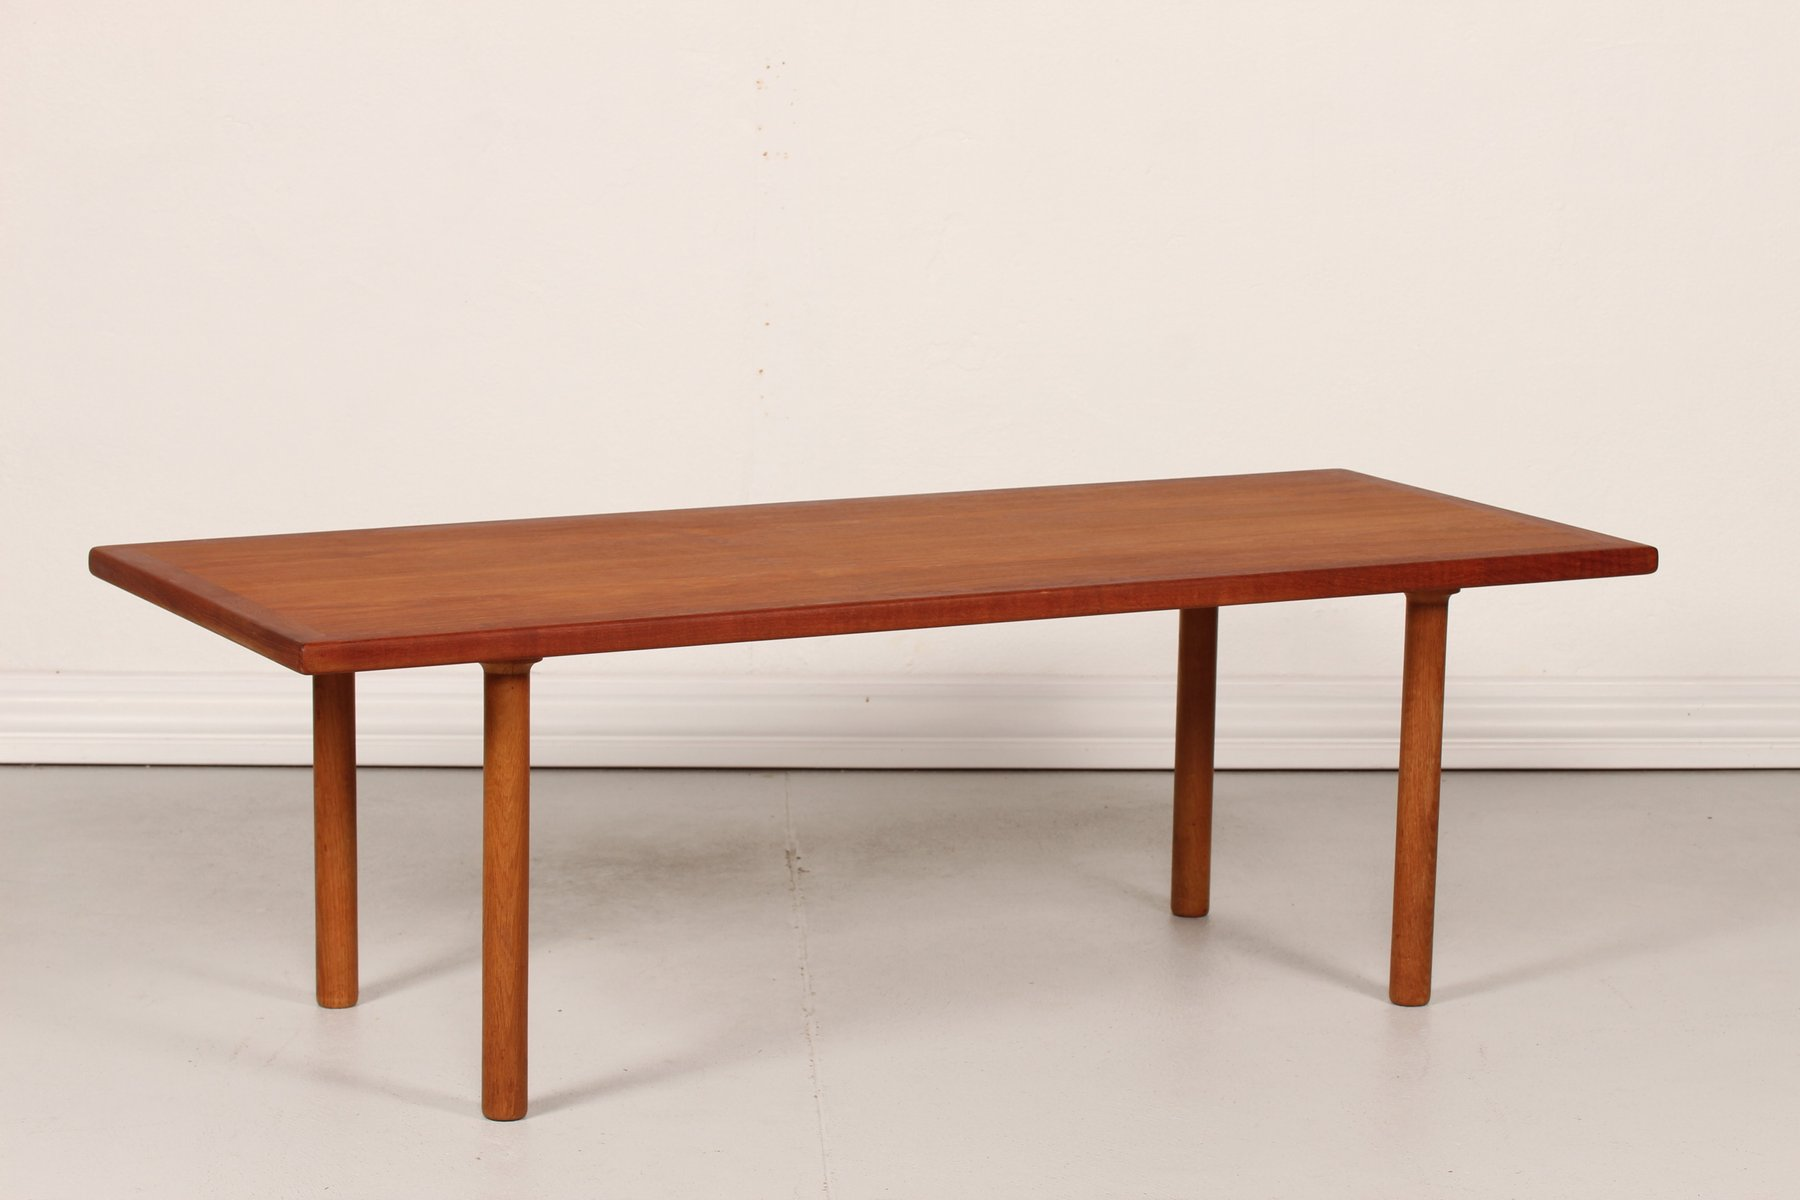 Vintage AT 12 Coffee Table by Hans J Wegner for Andreas Tuck for